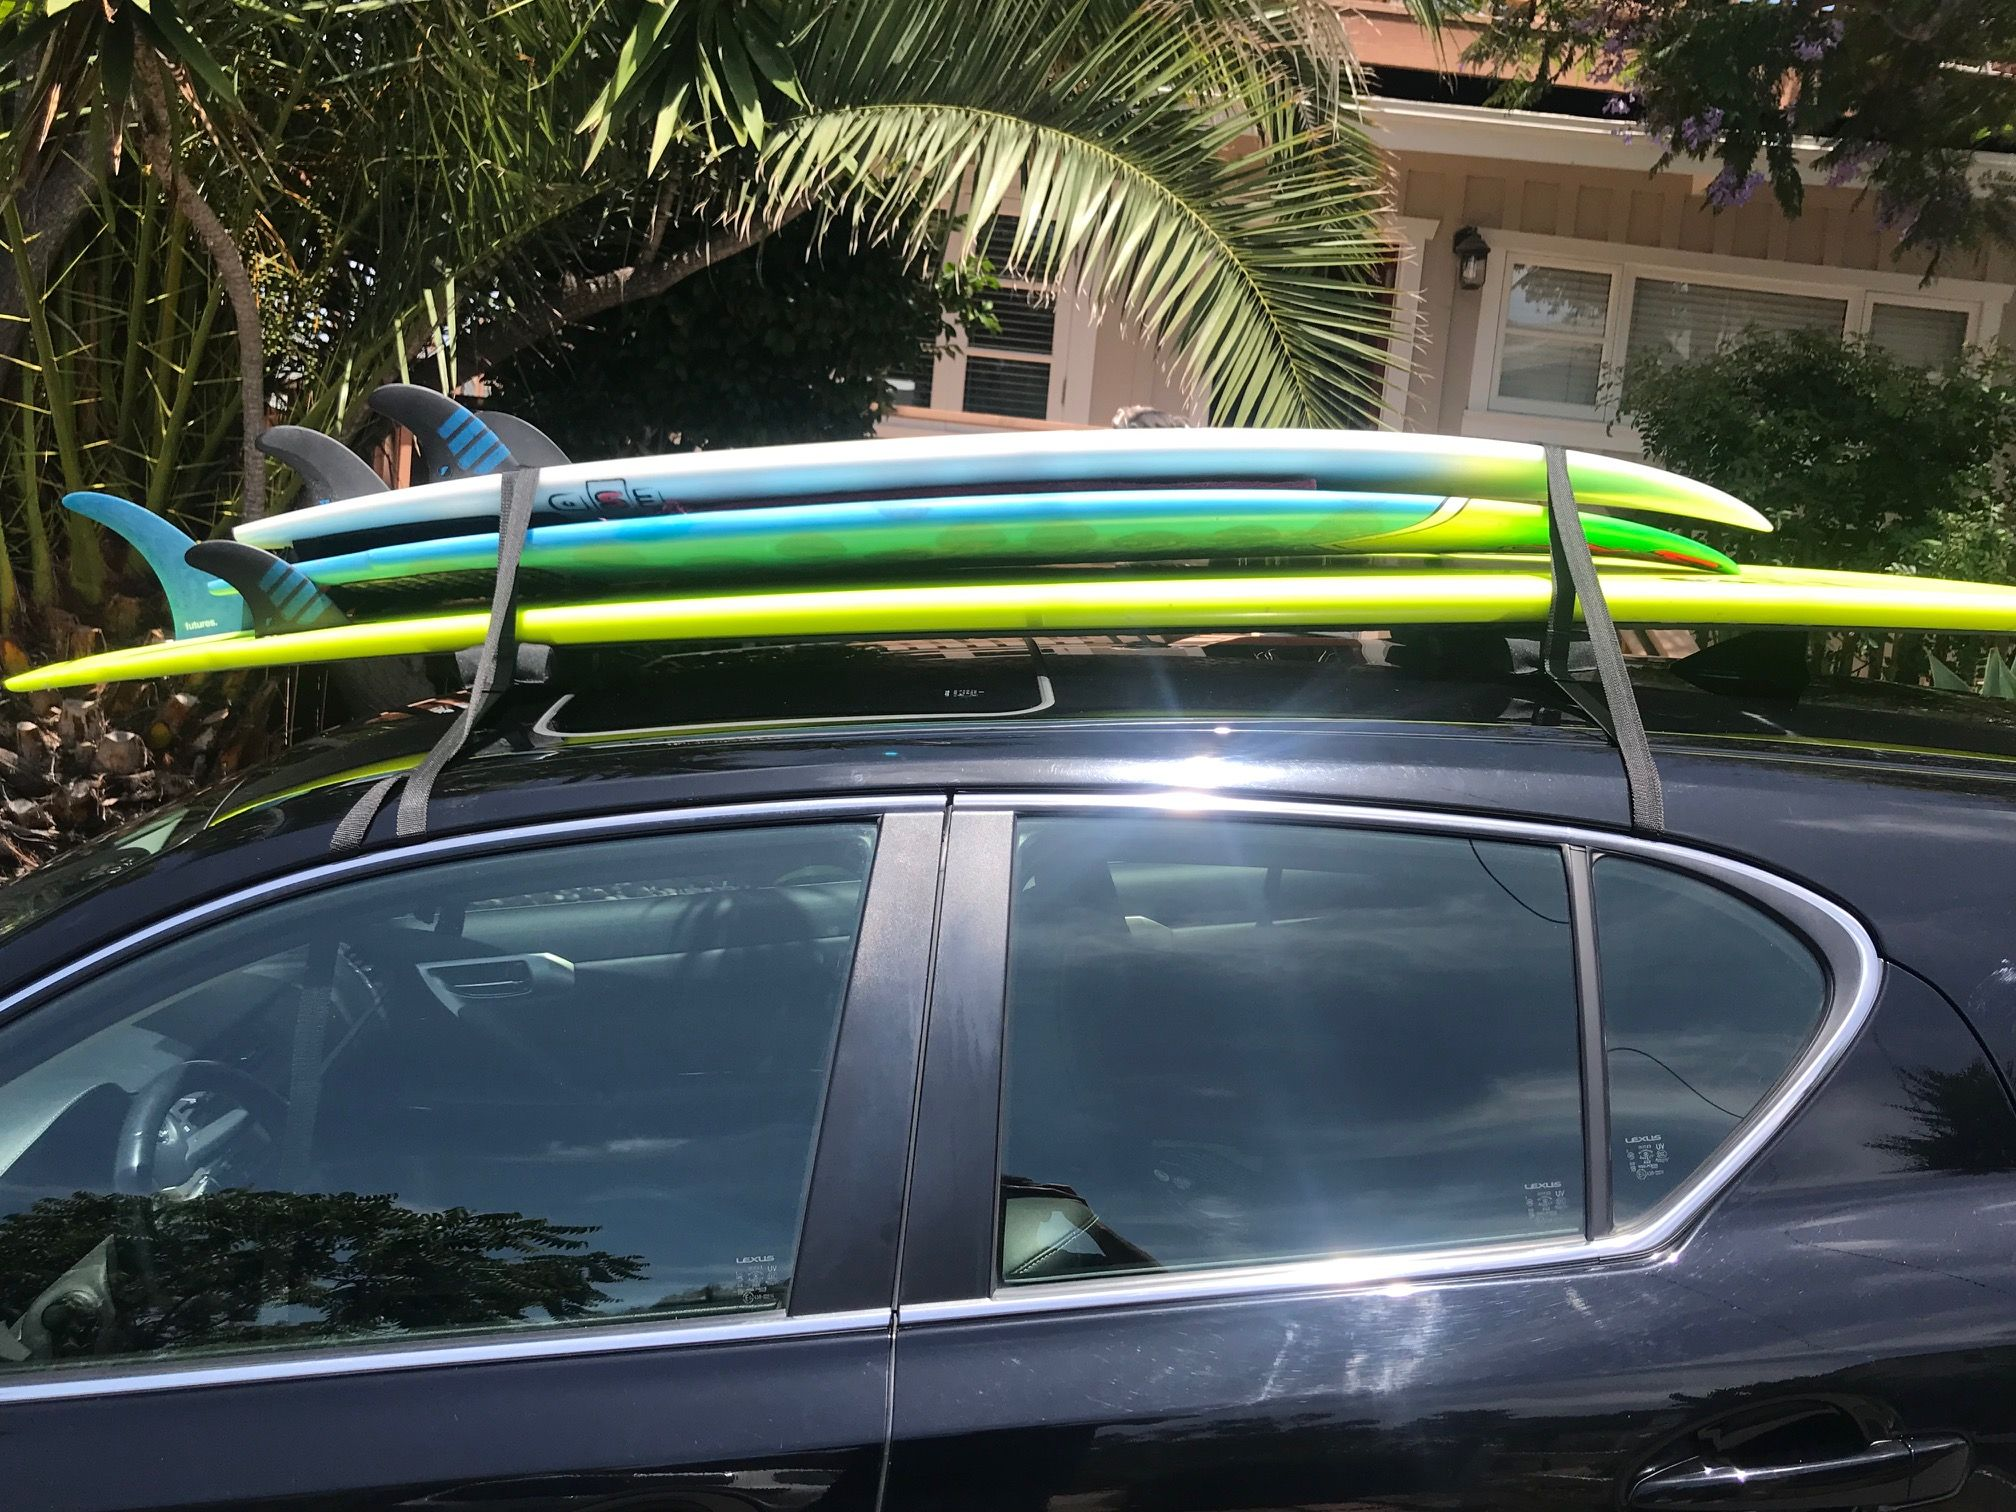 New Soft Racks By Cor Surf No Roof Rack Needed Surfboard Roof Rack Surfboard Rack Roof Rack